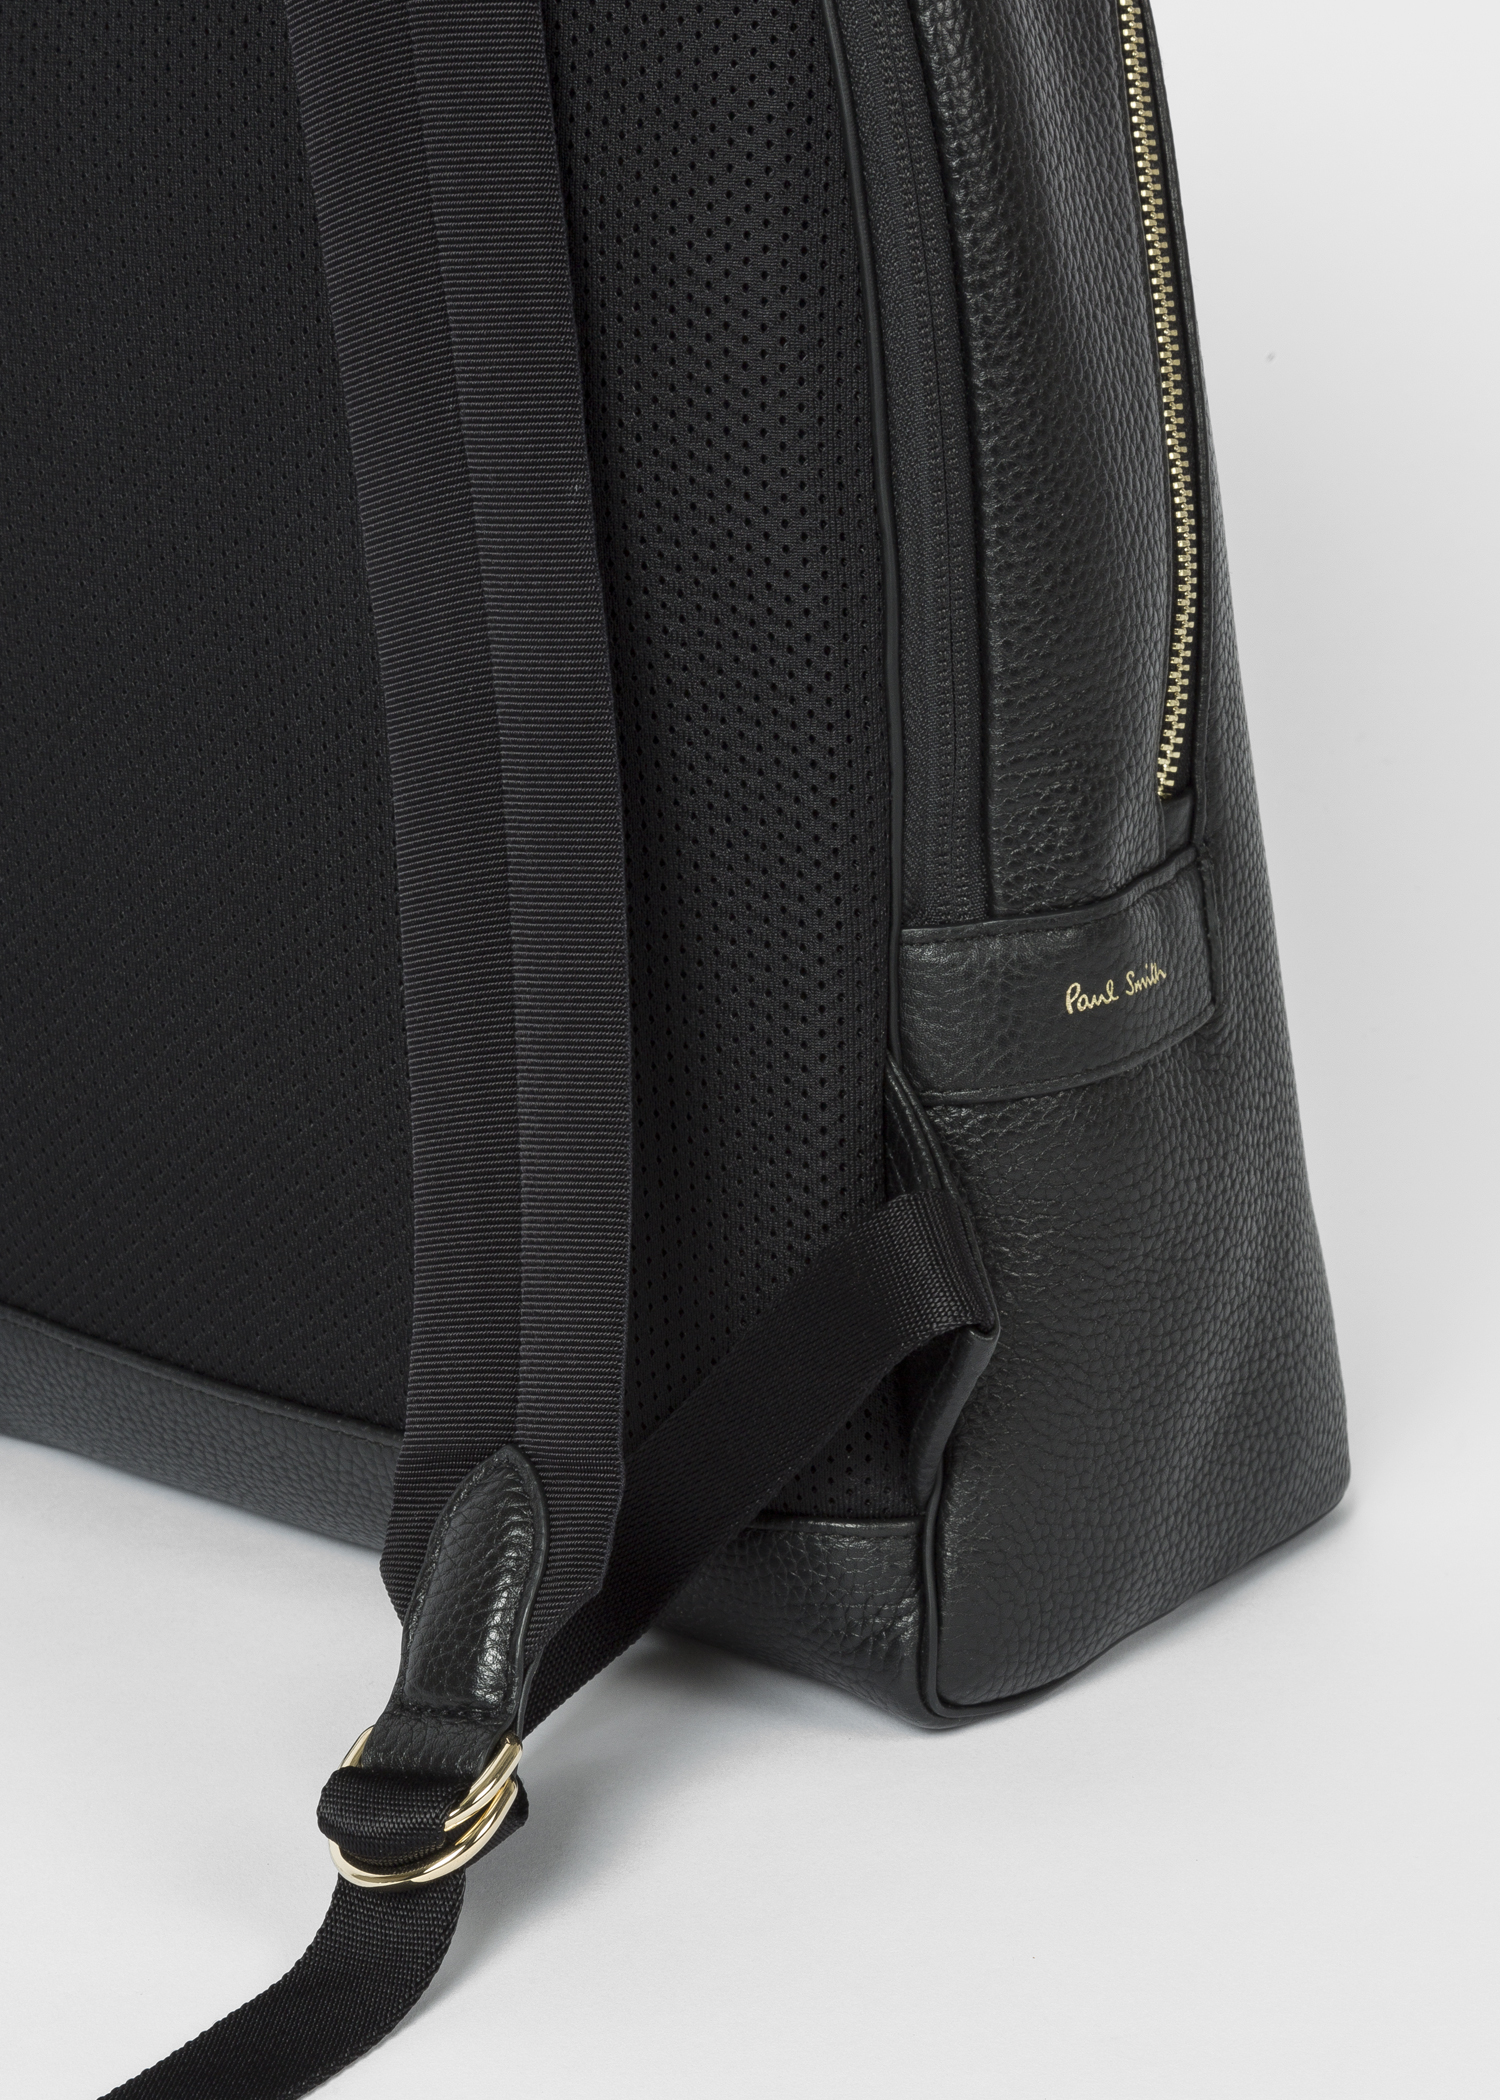 f408b3aa84 Strap view- Men s Black Leather Signature Stripe Backpack by Paul Smith